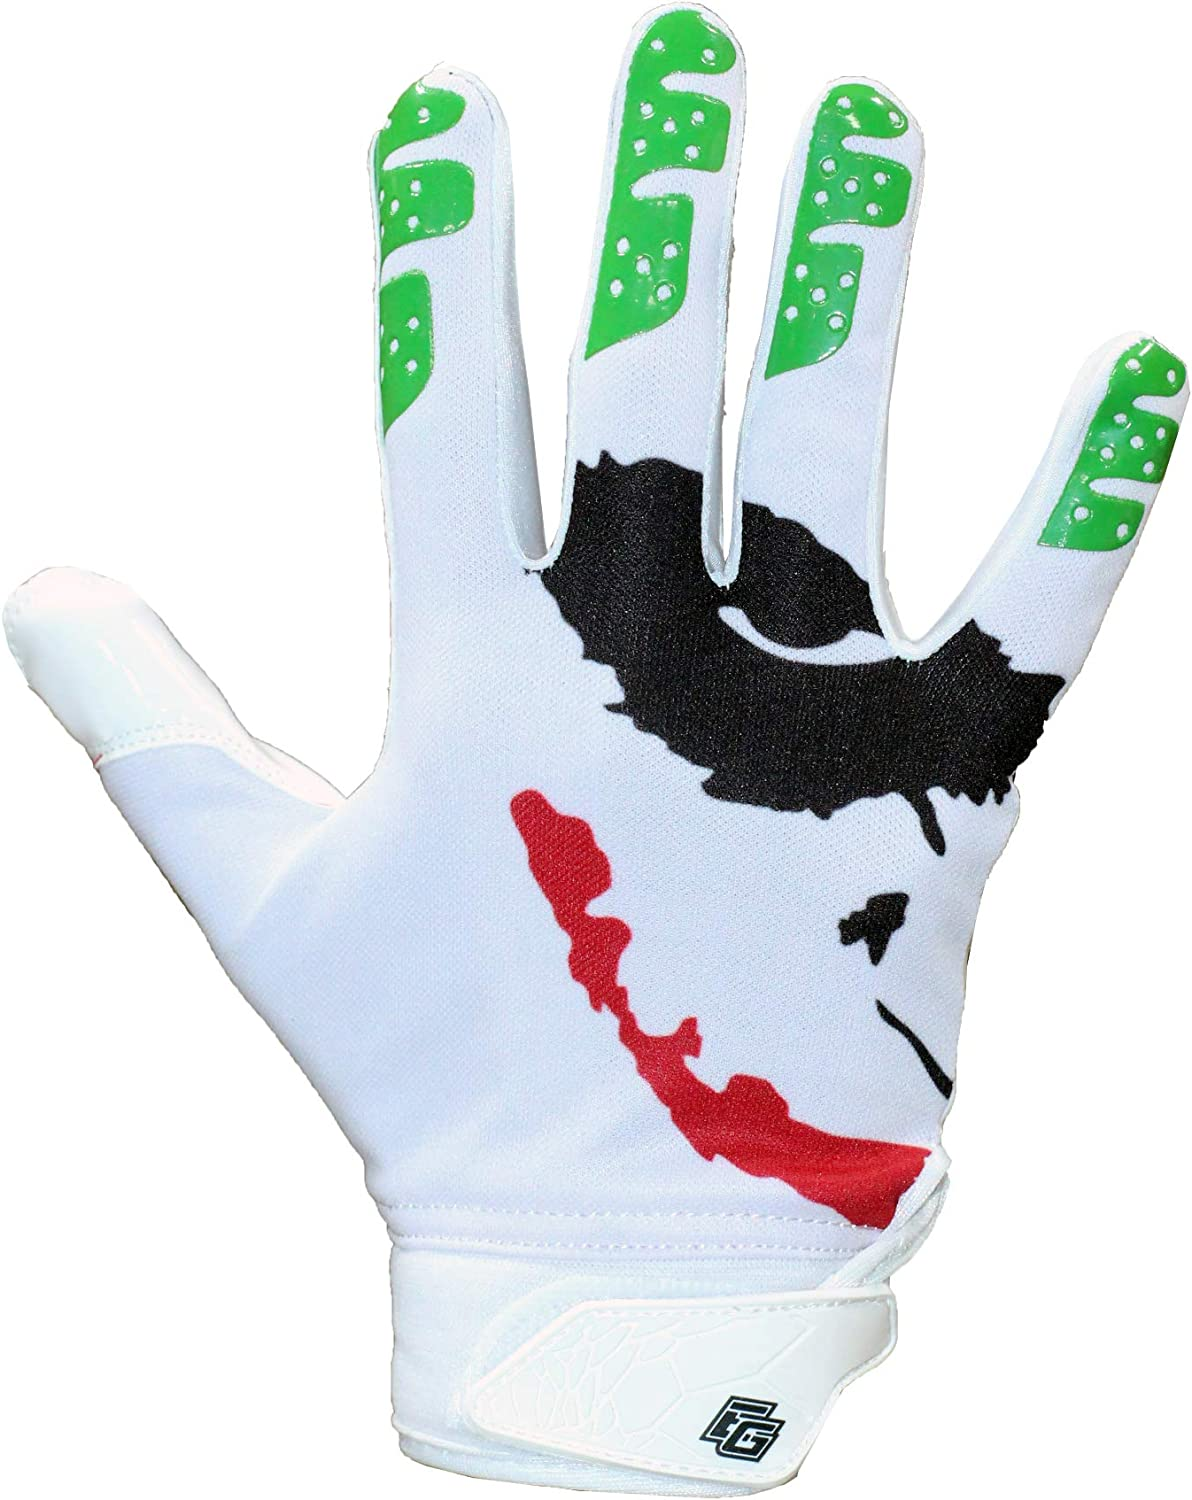 Repster Football Gloves Tacky Grip Skin Tight Adult Football Gloves Jester Pro Elite Super Sticky Receiver Football Gloves Enhanced Performance Football Gloves Men Adult Sizes